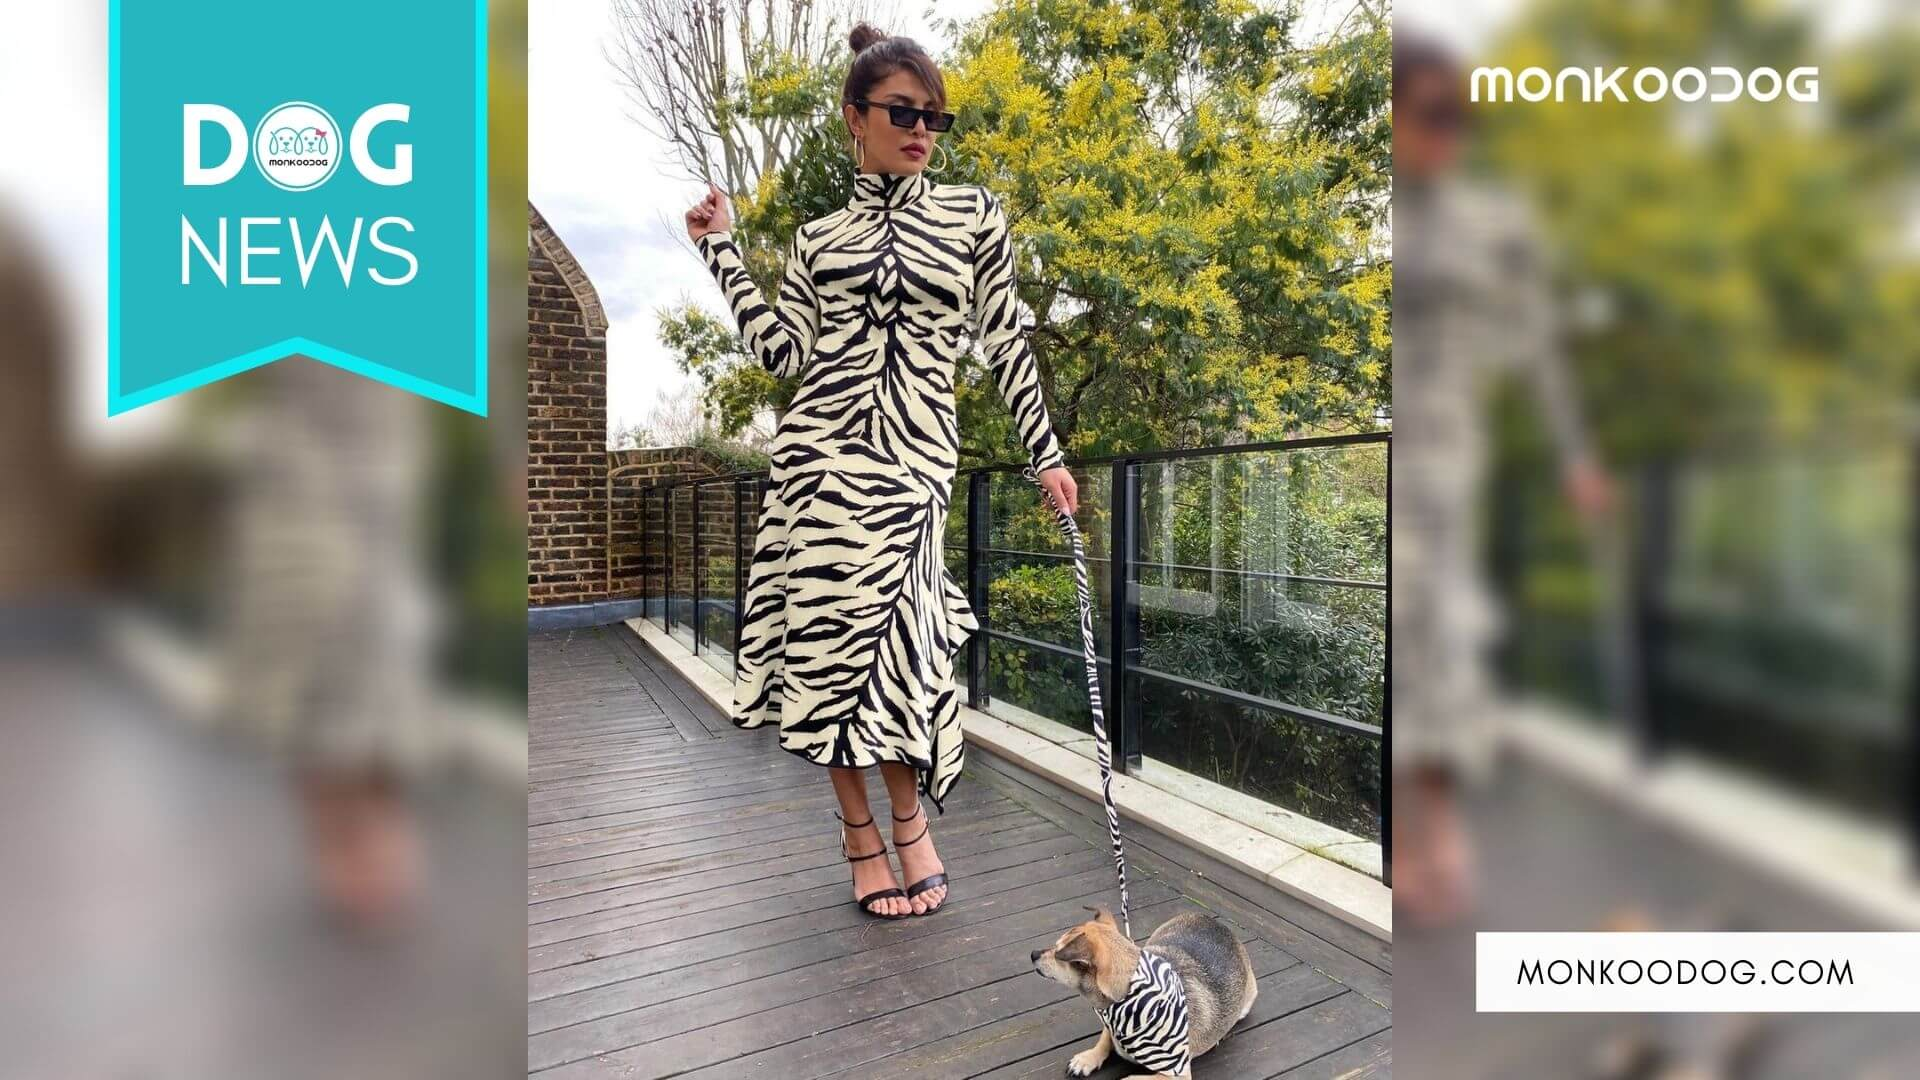 Priyanka Chopra Jonas and pet dog Diana gives twinning a new meaning with their adorable new look